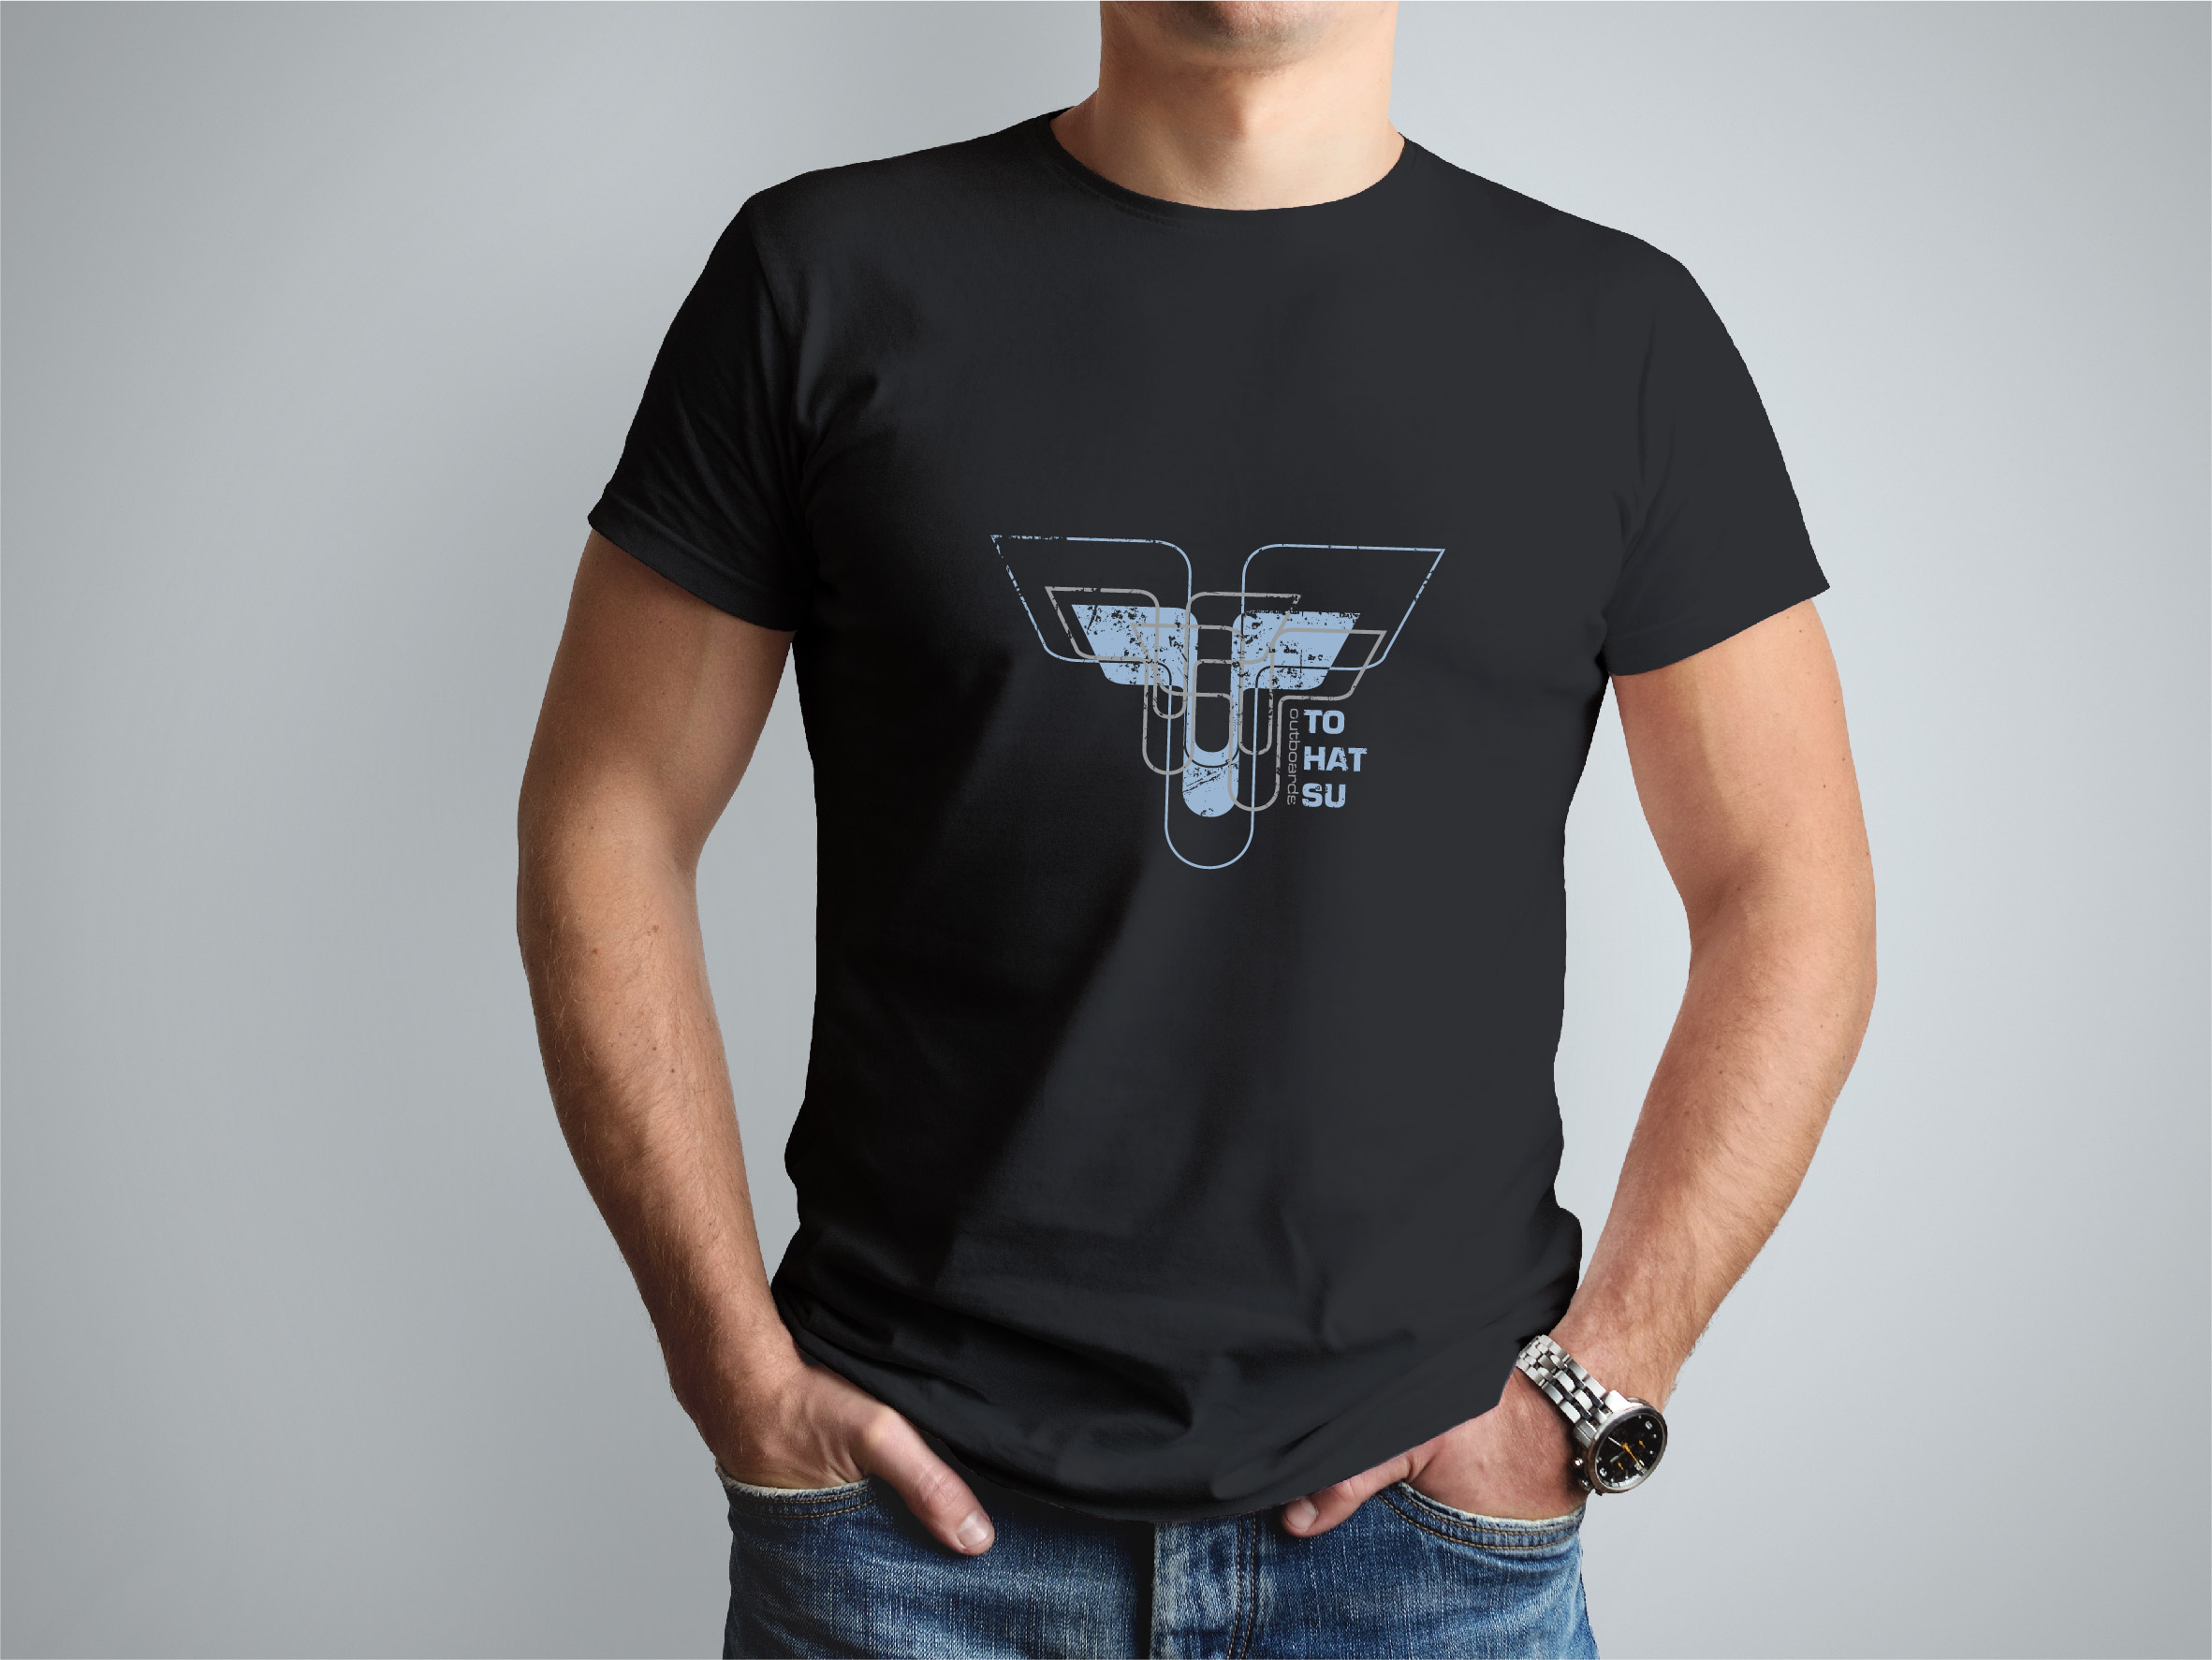 advancedesign_t-shirt